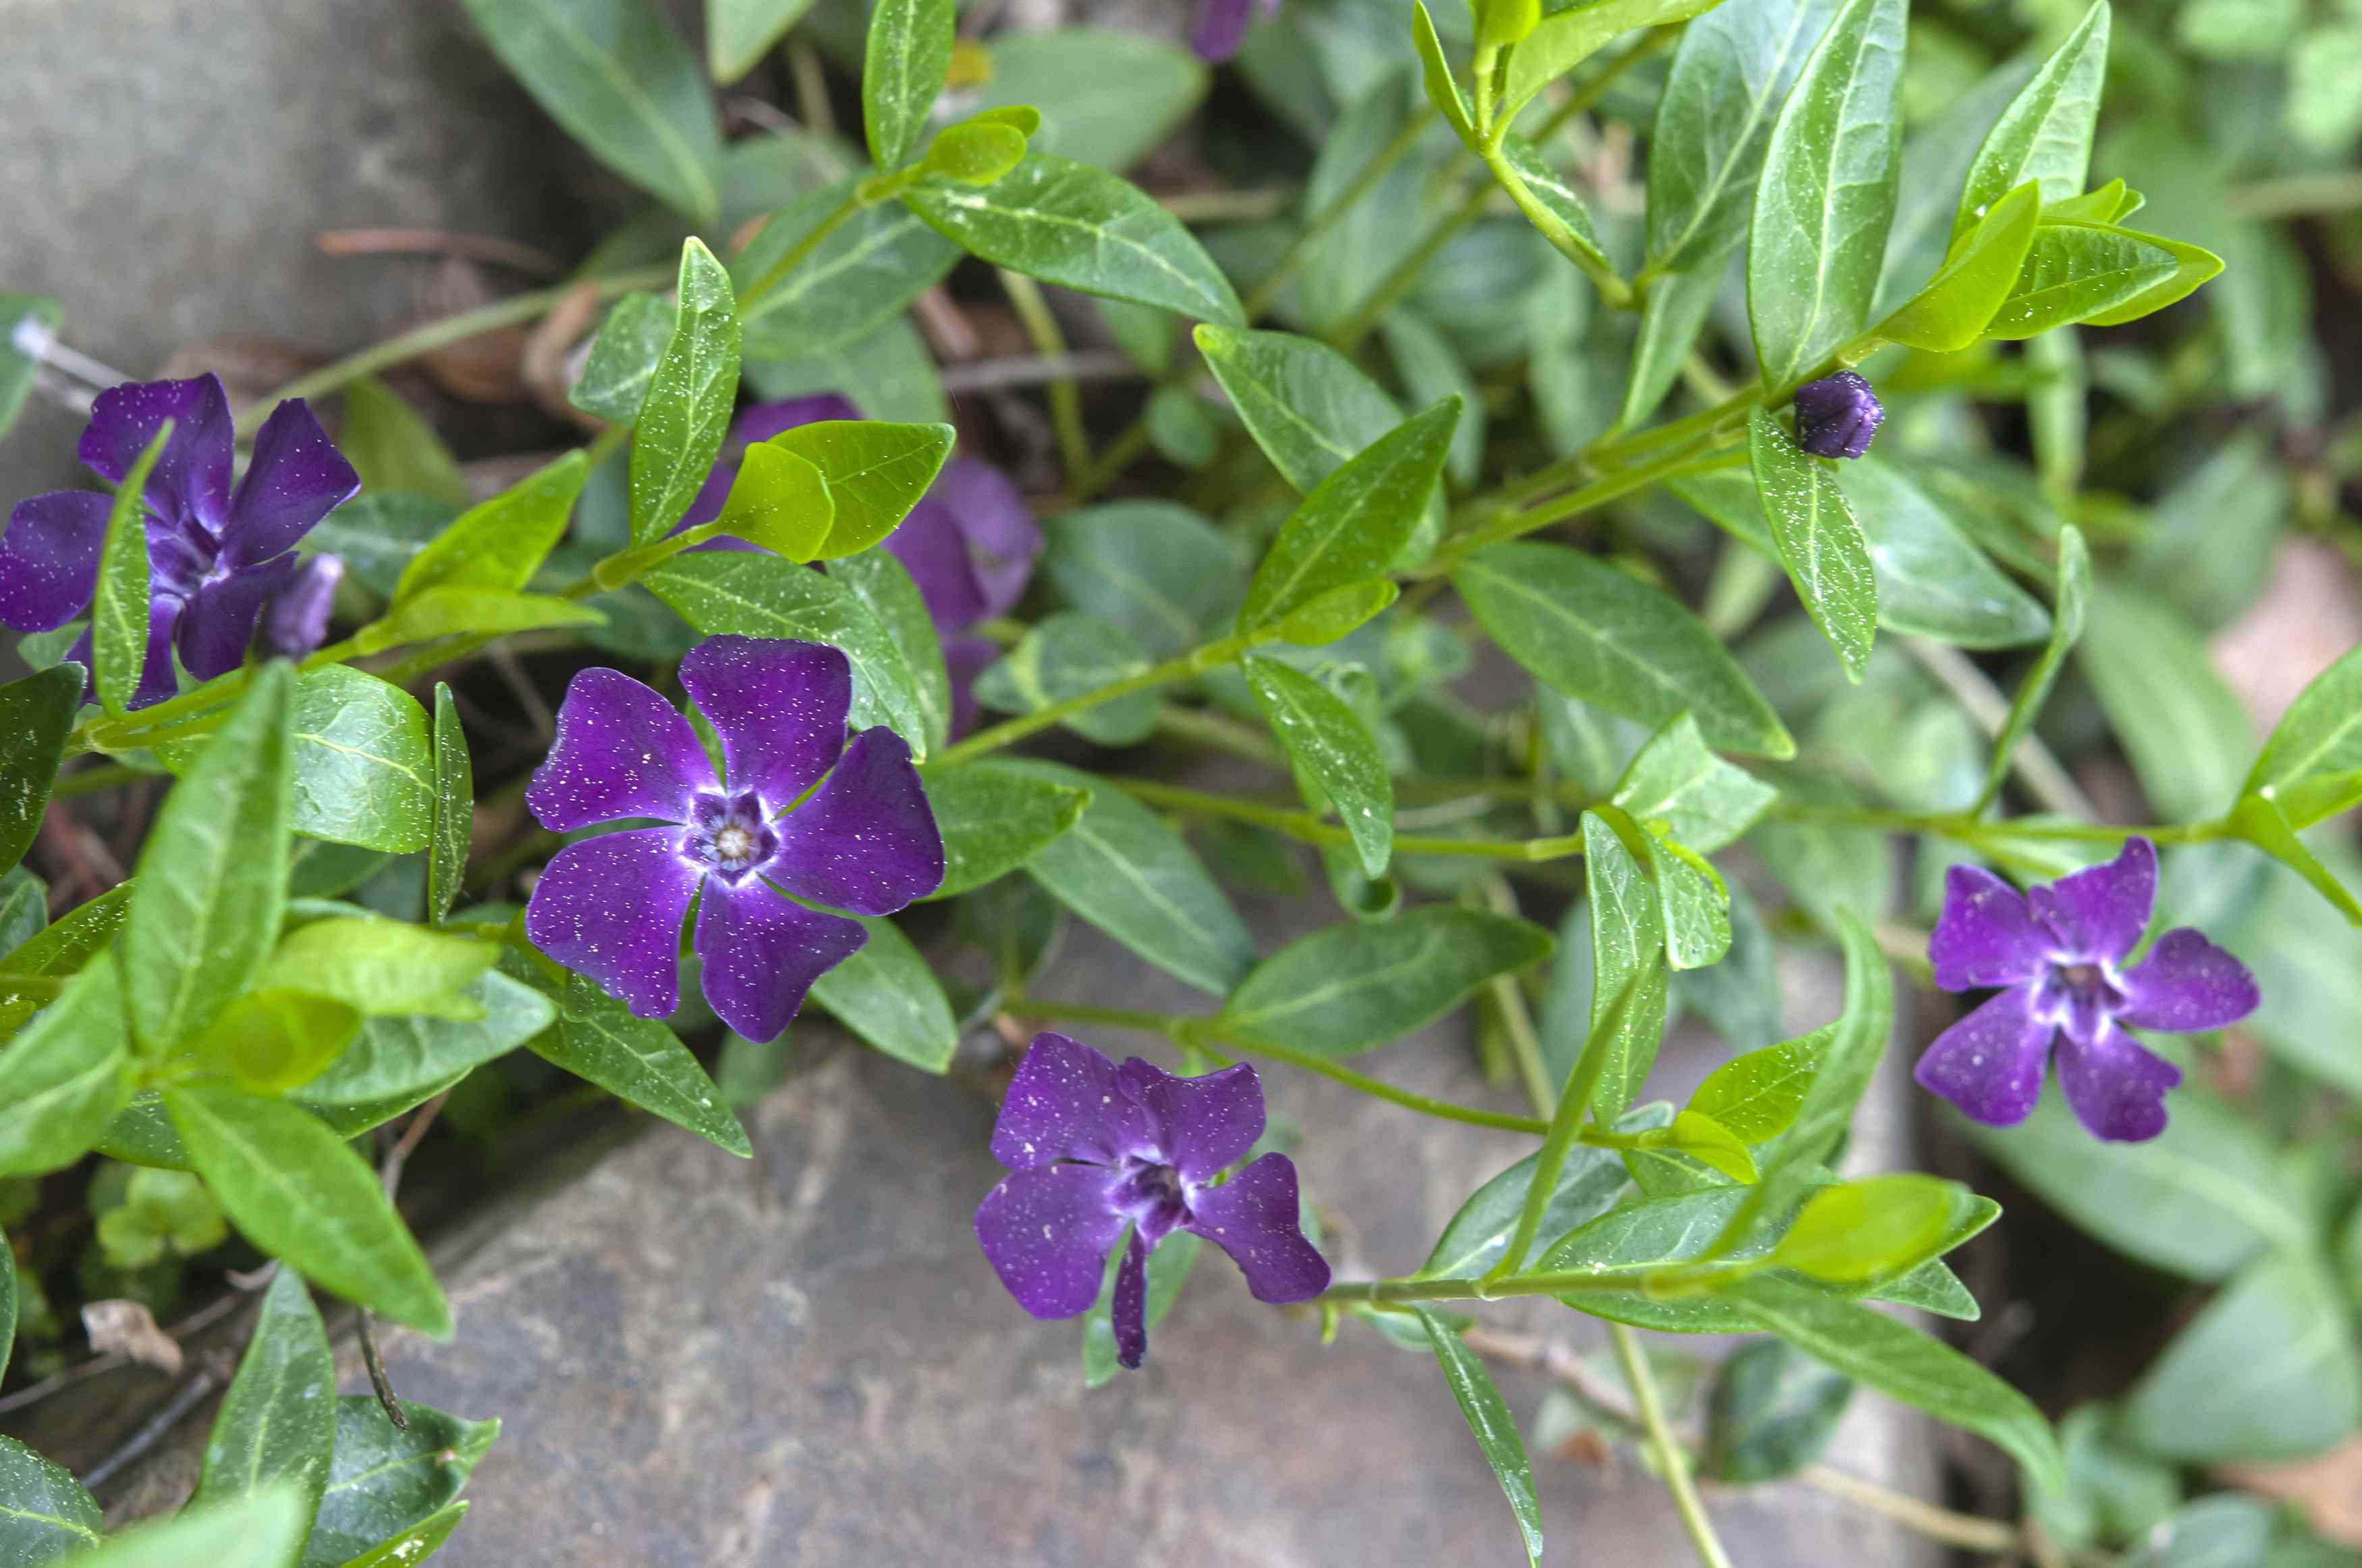 Vinca minor flowers with small purple petals on perennial drought-tolerant vines and rock